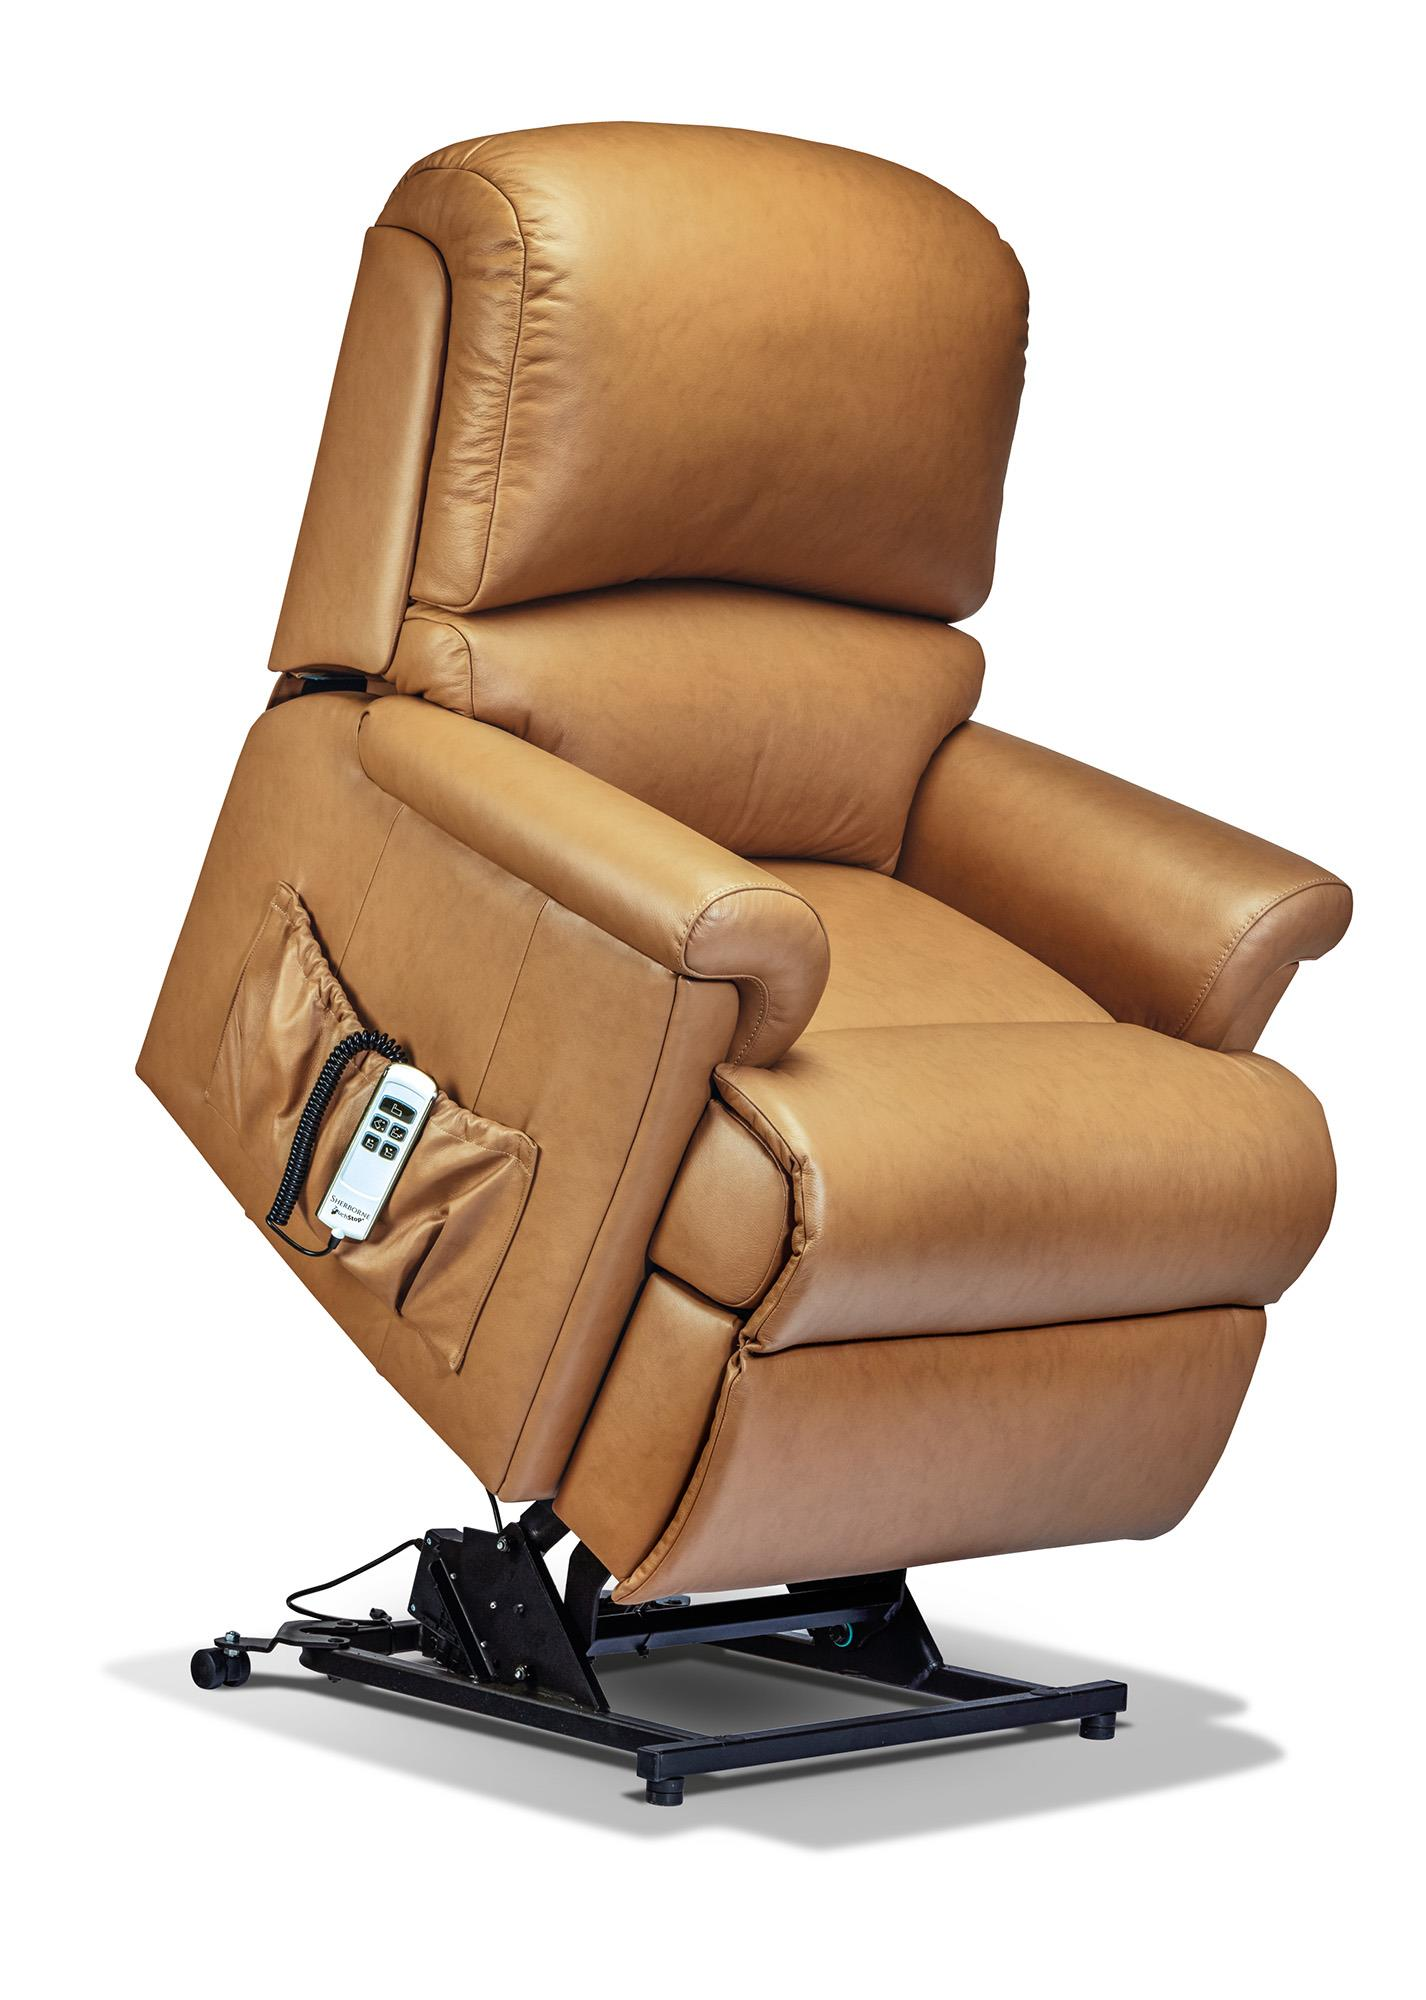 Nevada Riser Recliner Leather Chair - by Sherborne